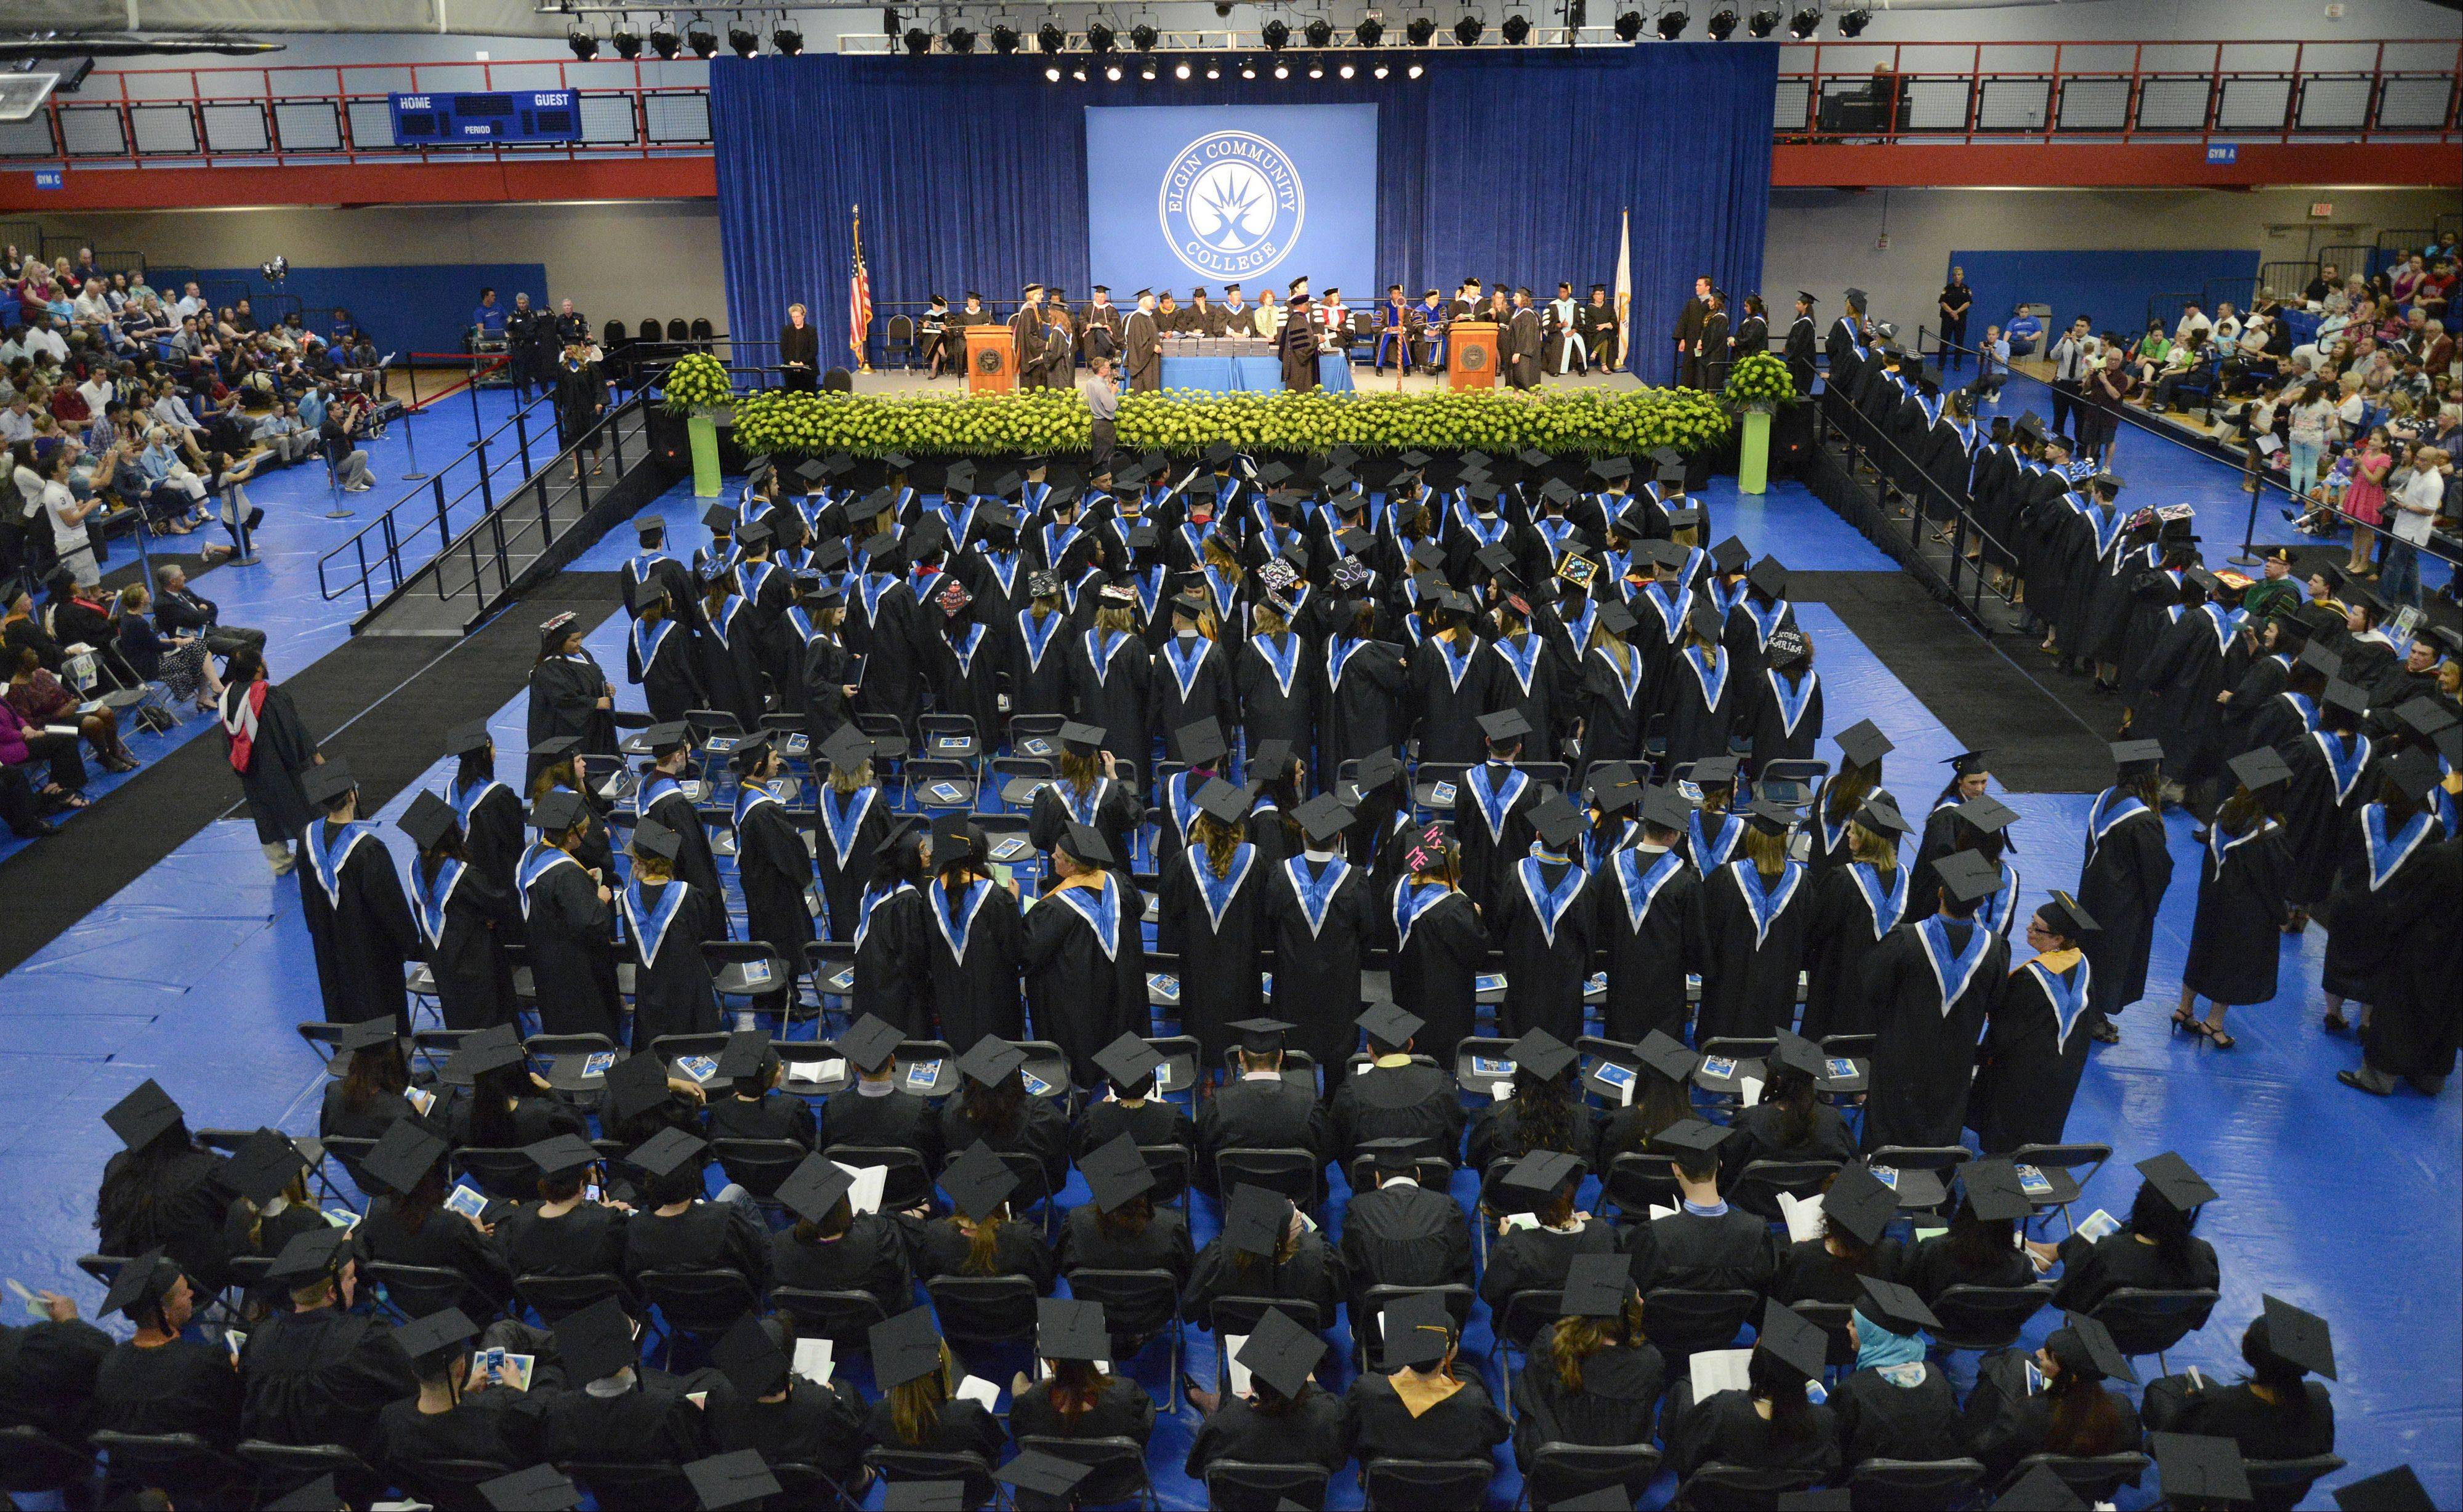 About 225 graduates receive their diplomas at Elgin Community College's afternoon commencement ceremony on Saturday.